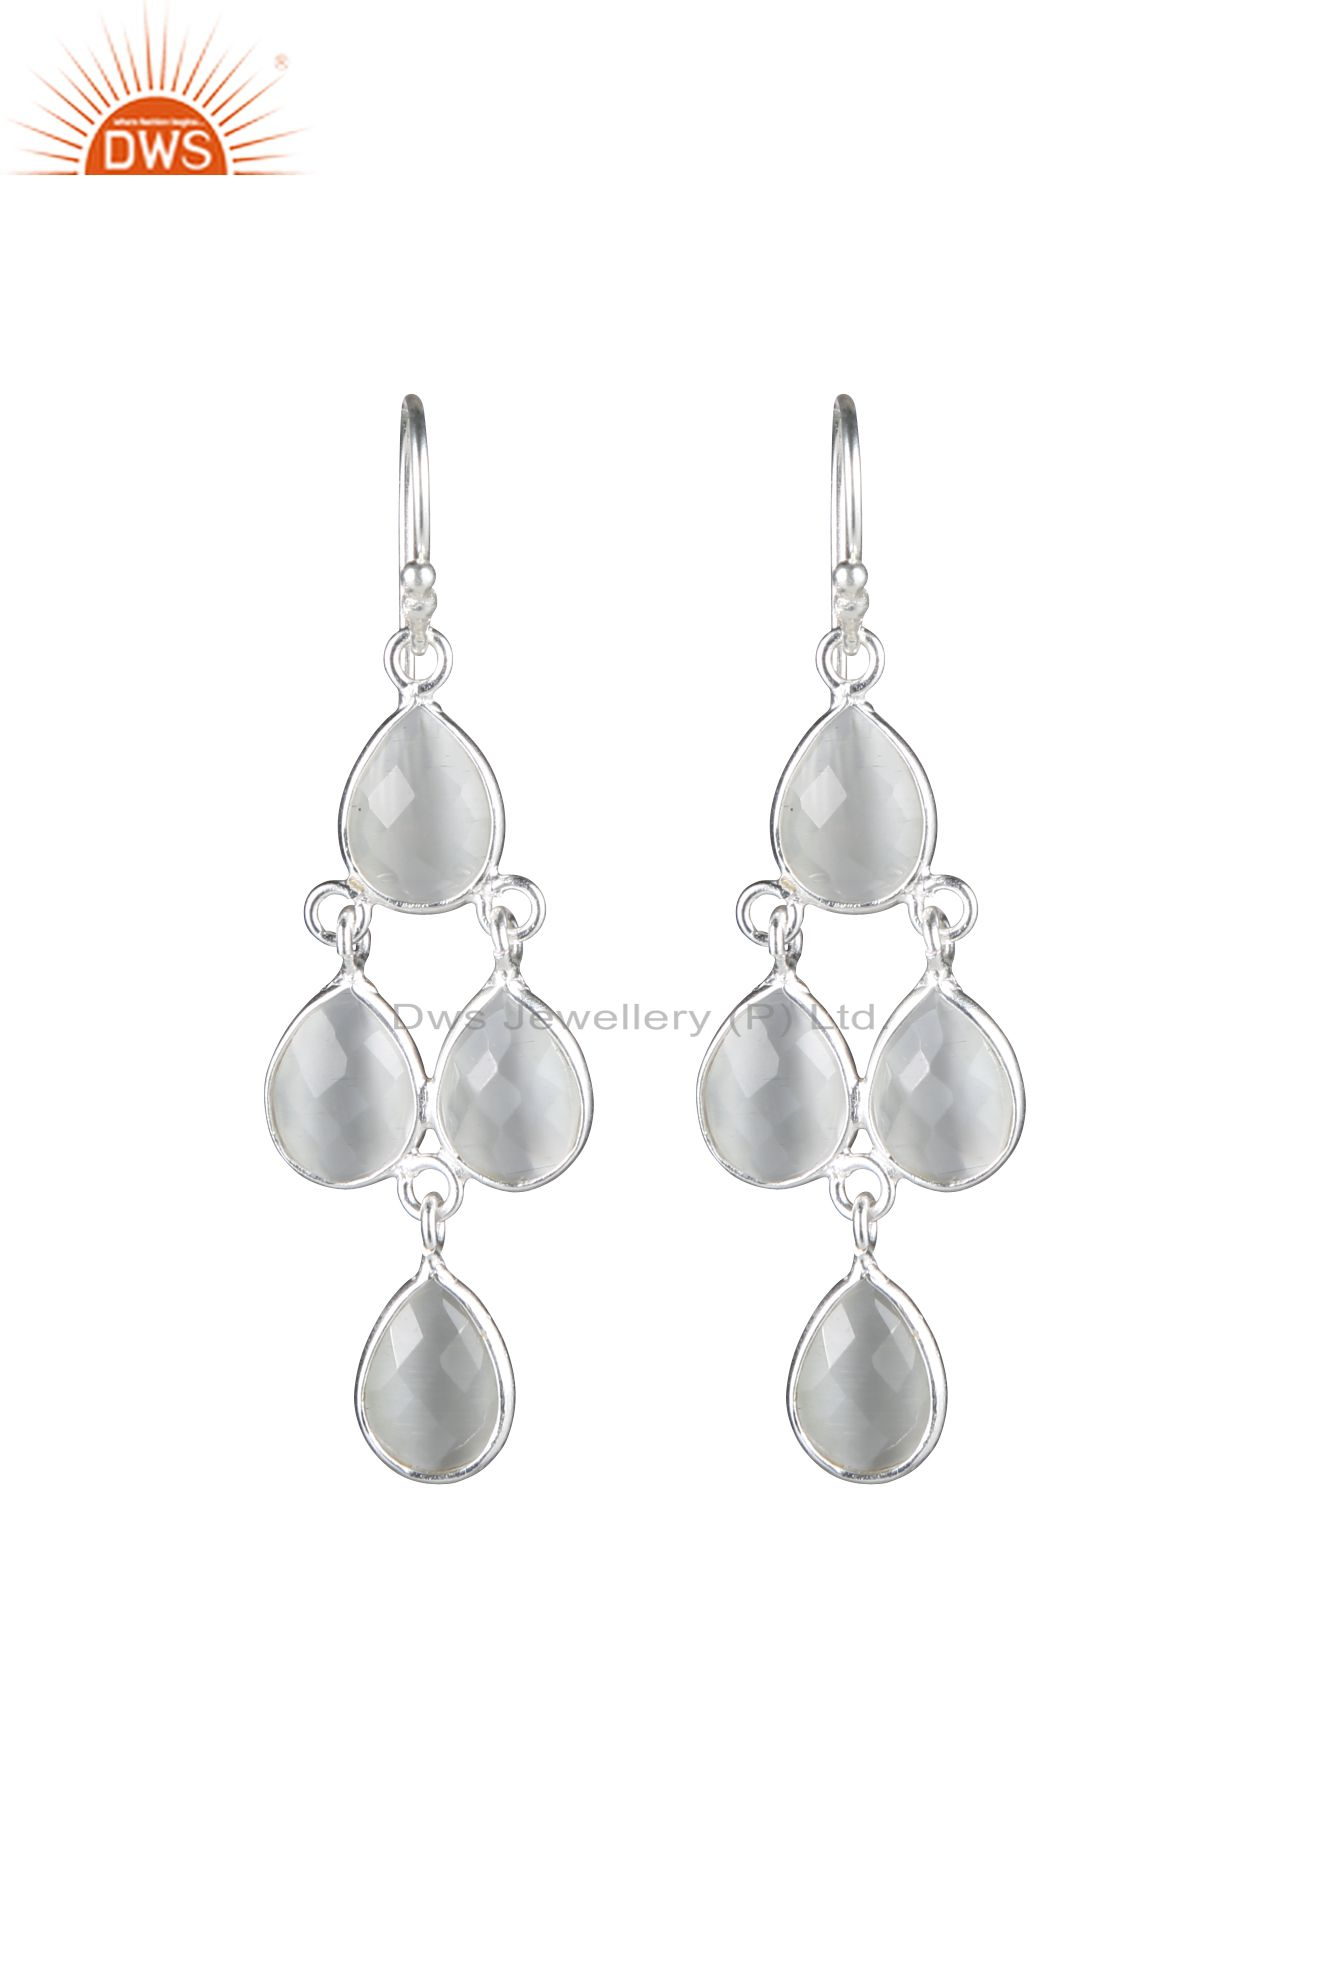 Handmade 925 Sterling Silver White Chalcedony Drop Chandelier Earrings